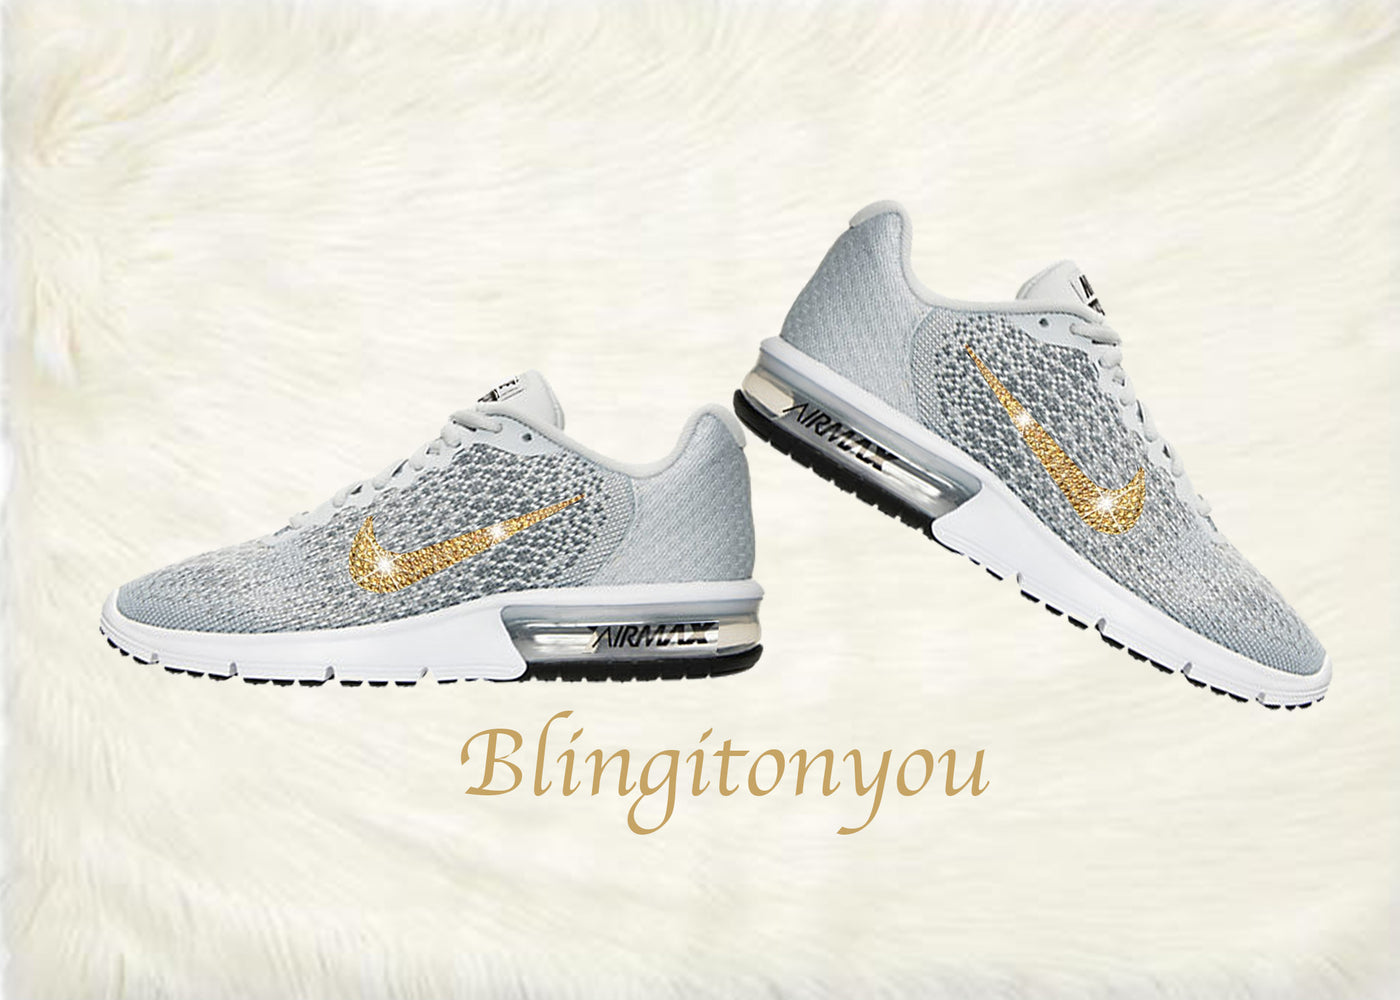 8eebdd229b73 ... Swarovski Nike Air Max Sequent 2 Shoes Grey Blinged Out With Gold  Swarovski Crystals - Nike ...